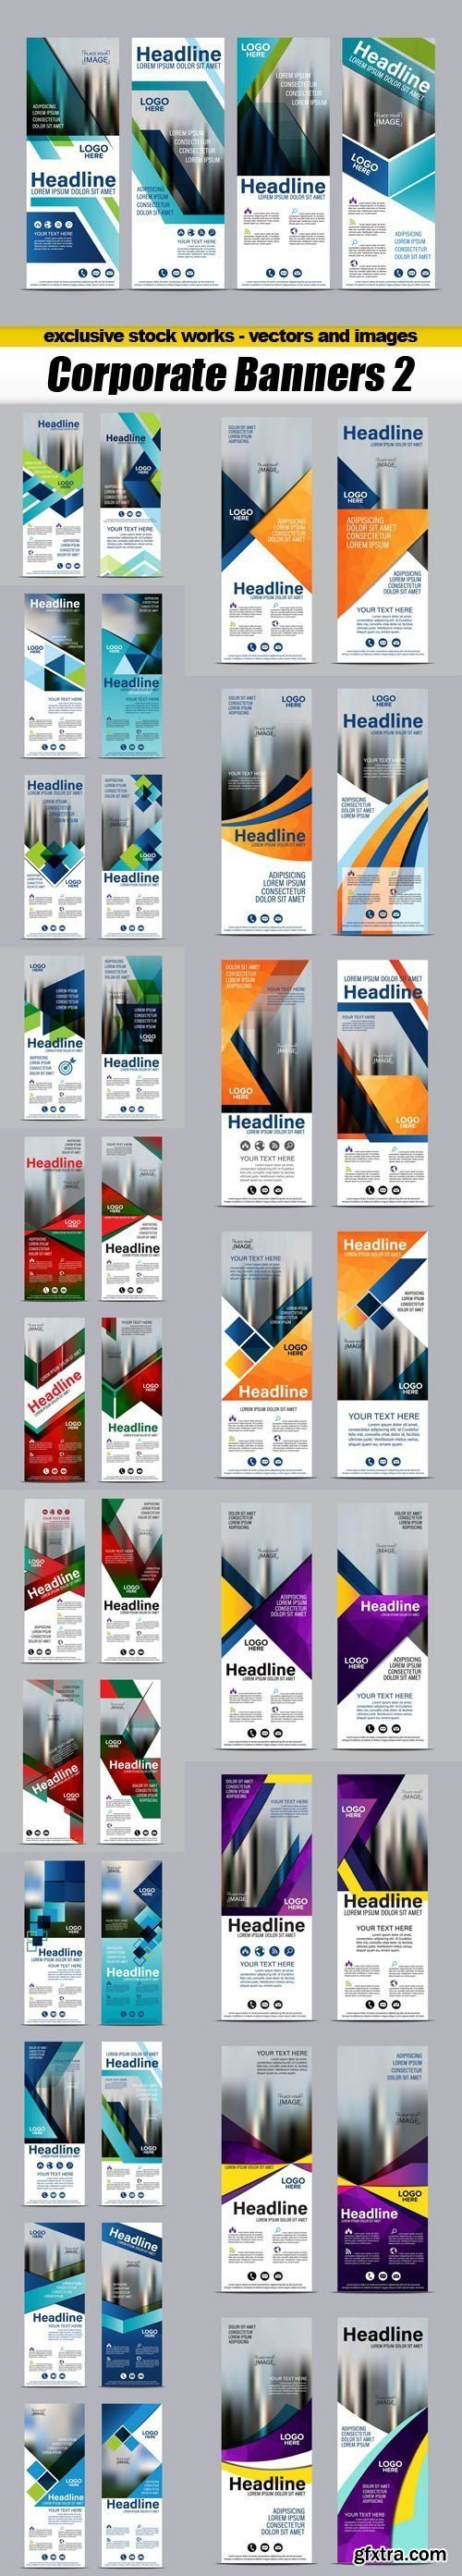 Corporate Banners 2 - 21xEPS